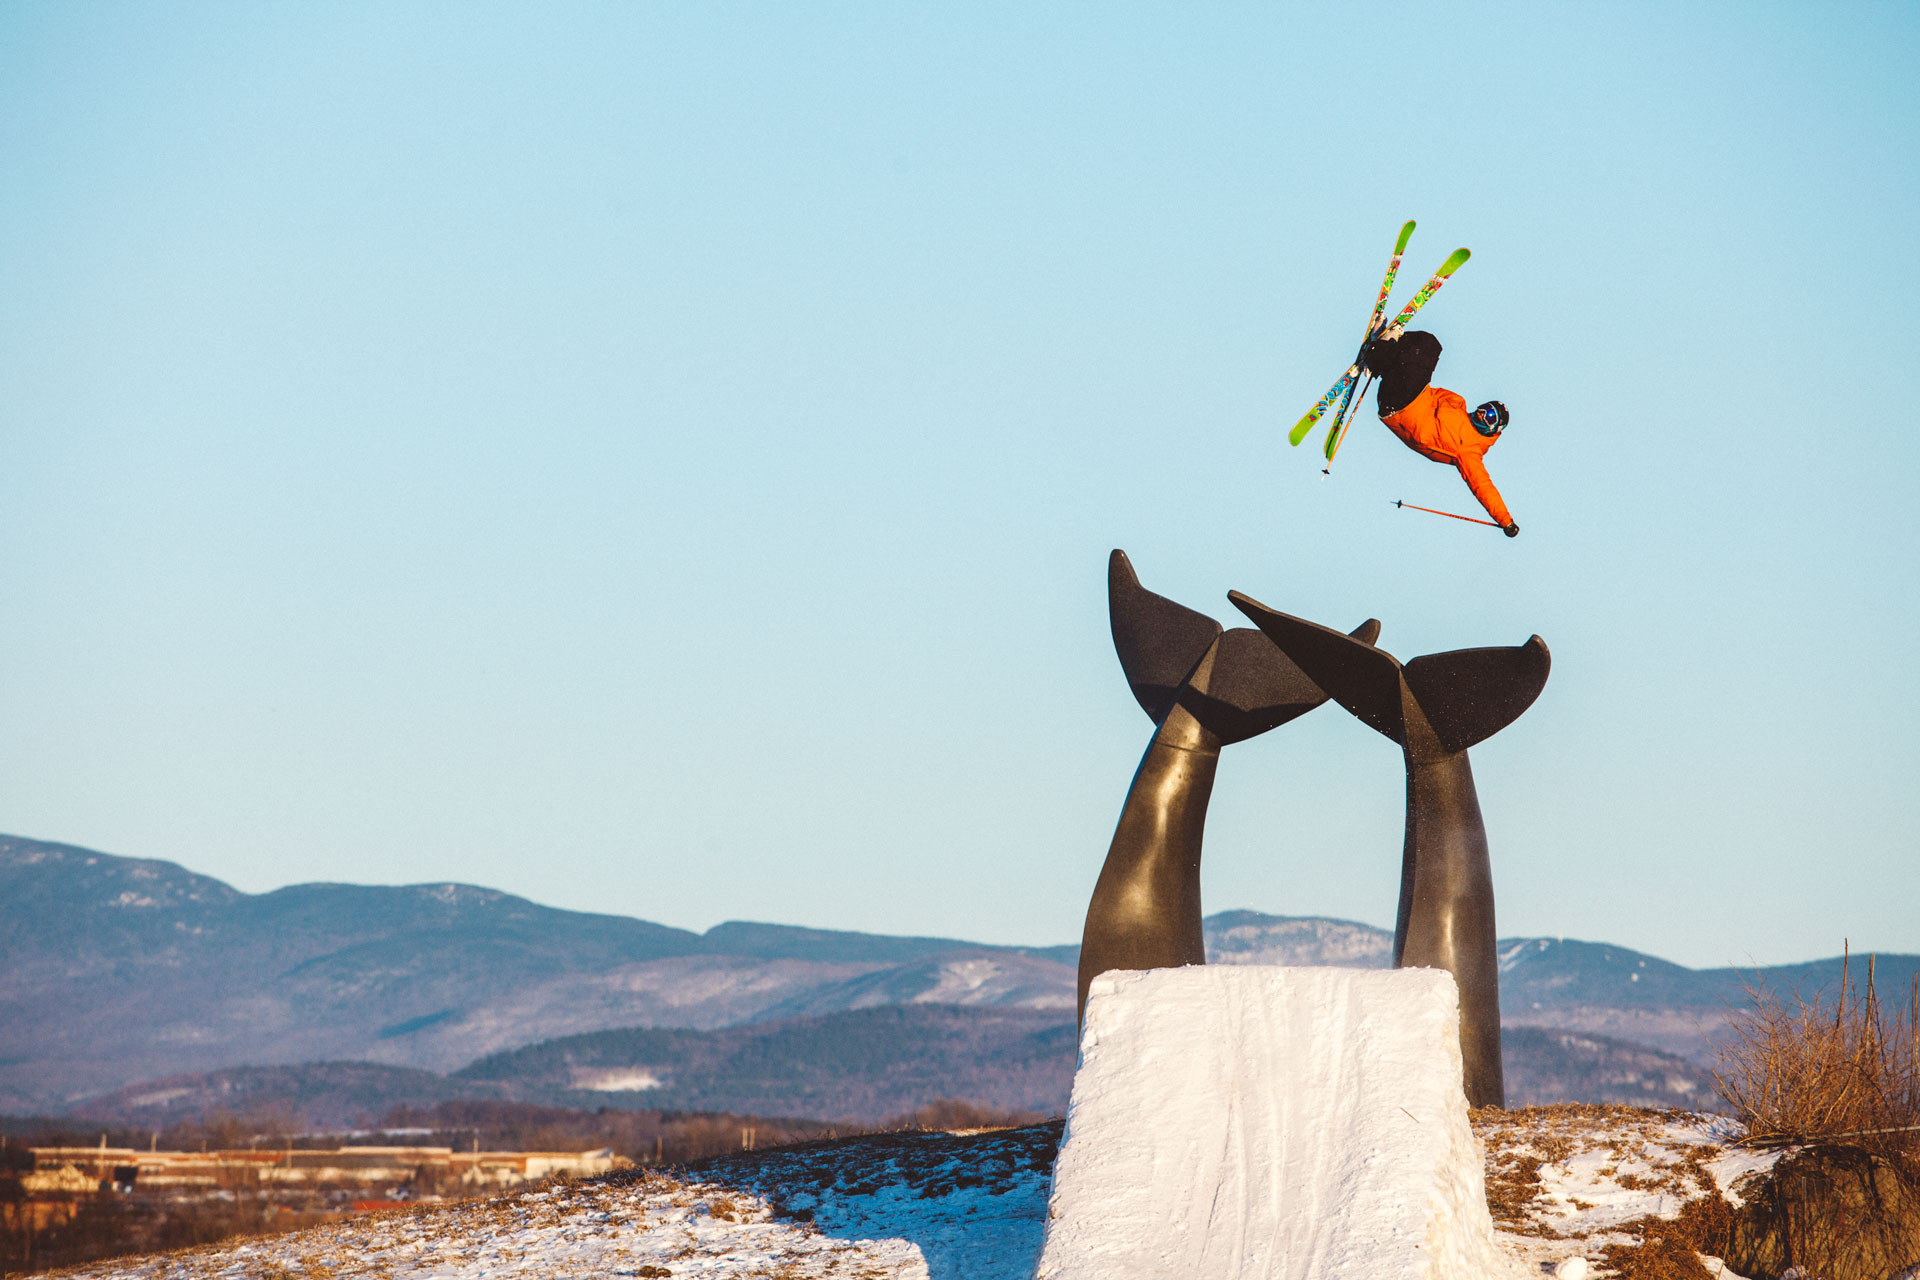 Skier jumps over Whales' Tail Sculpture